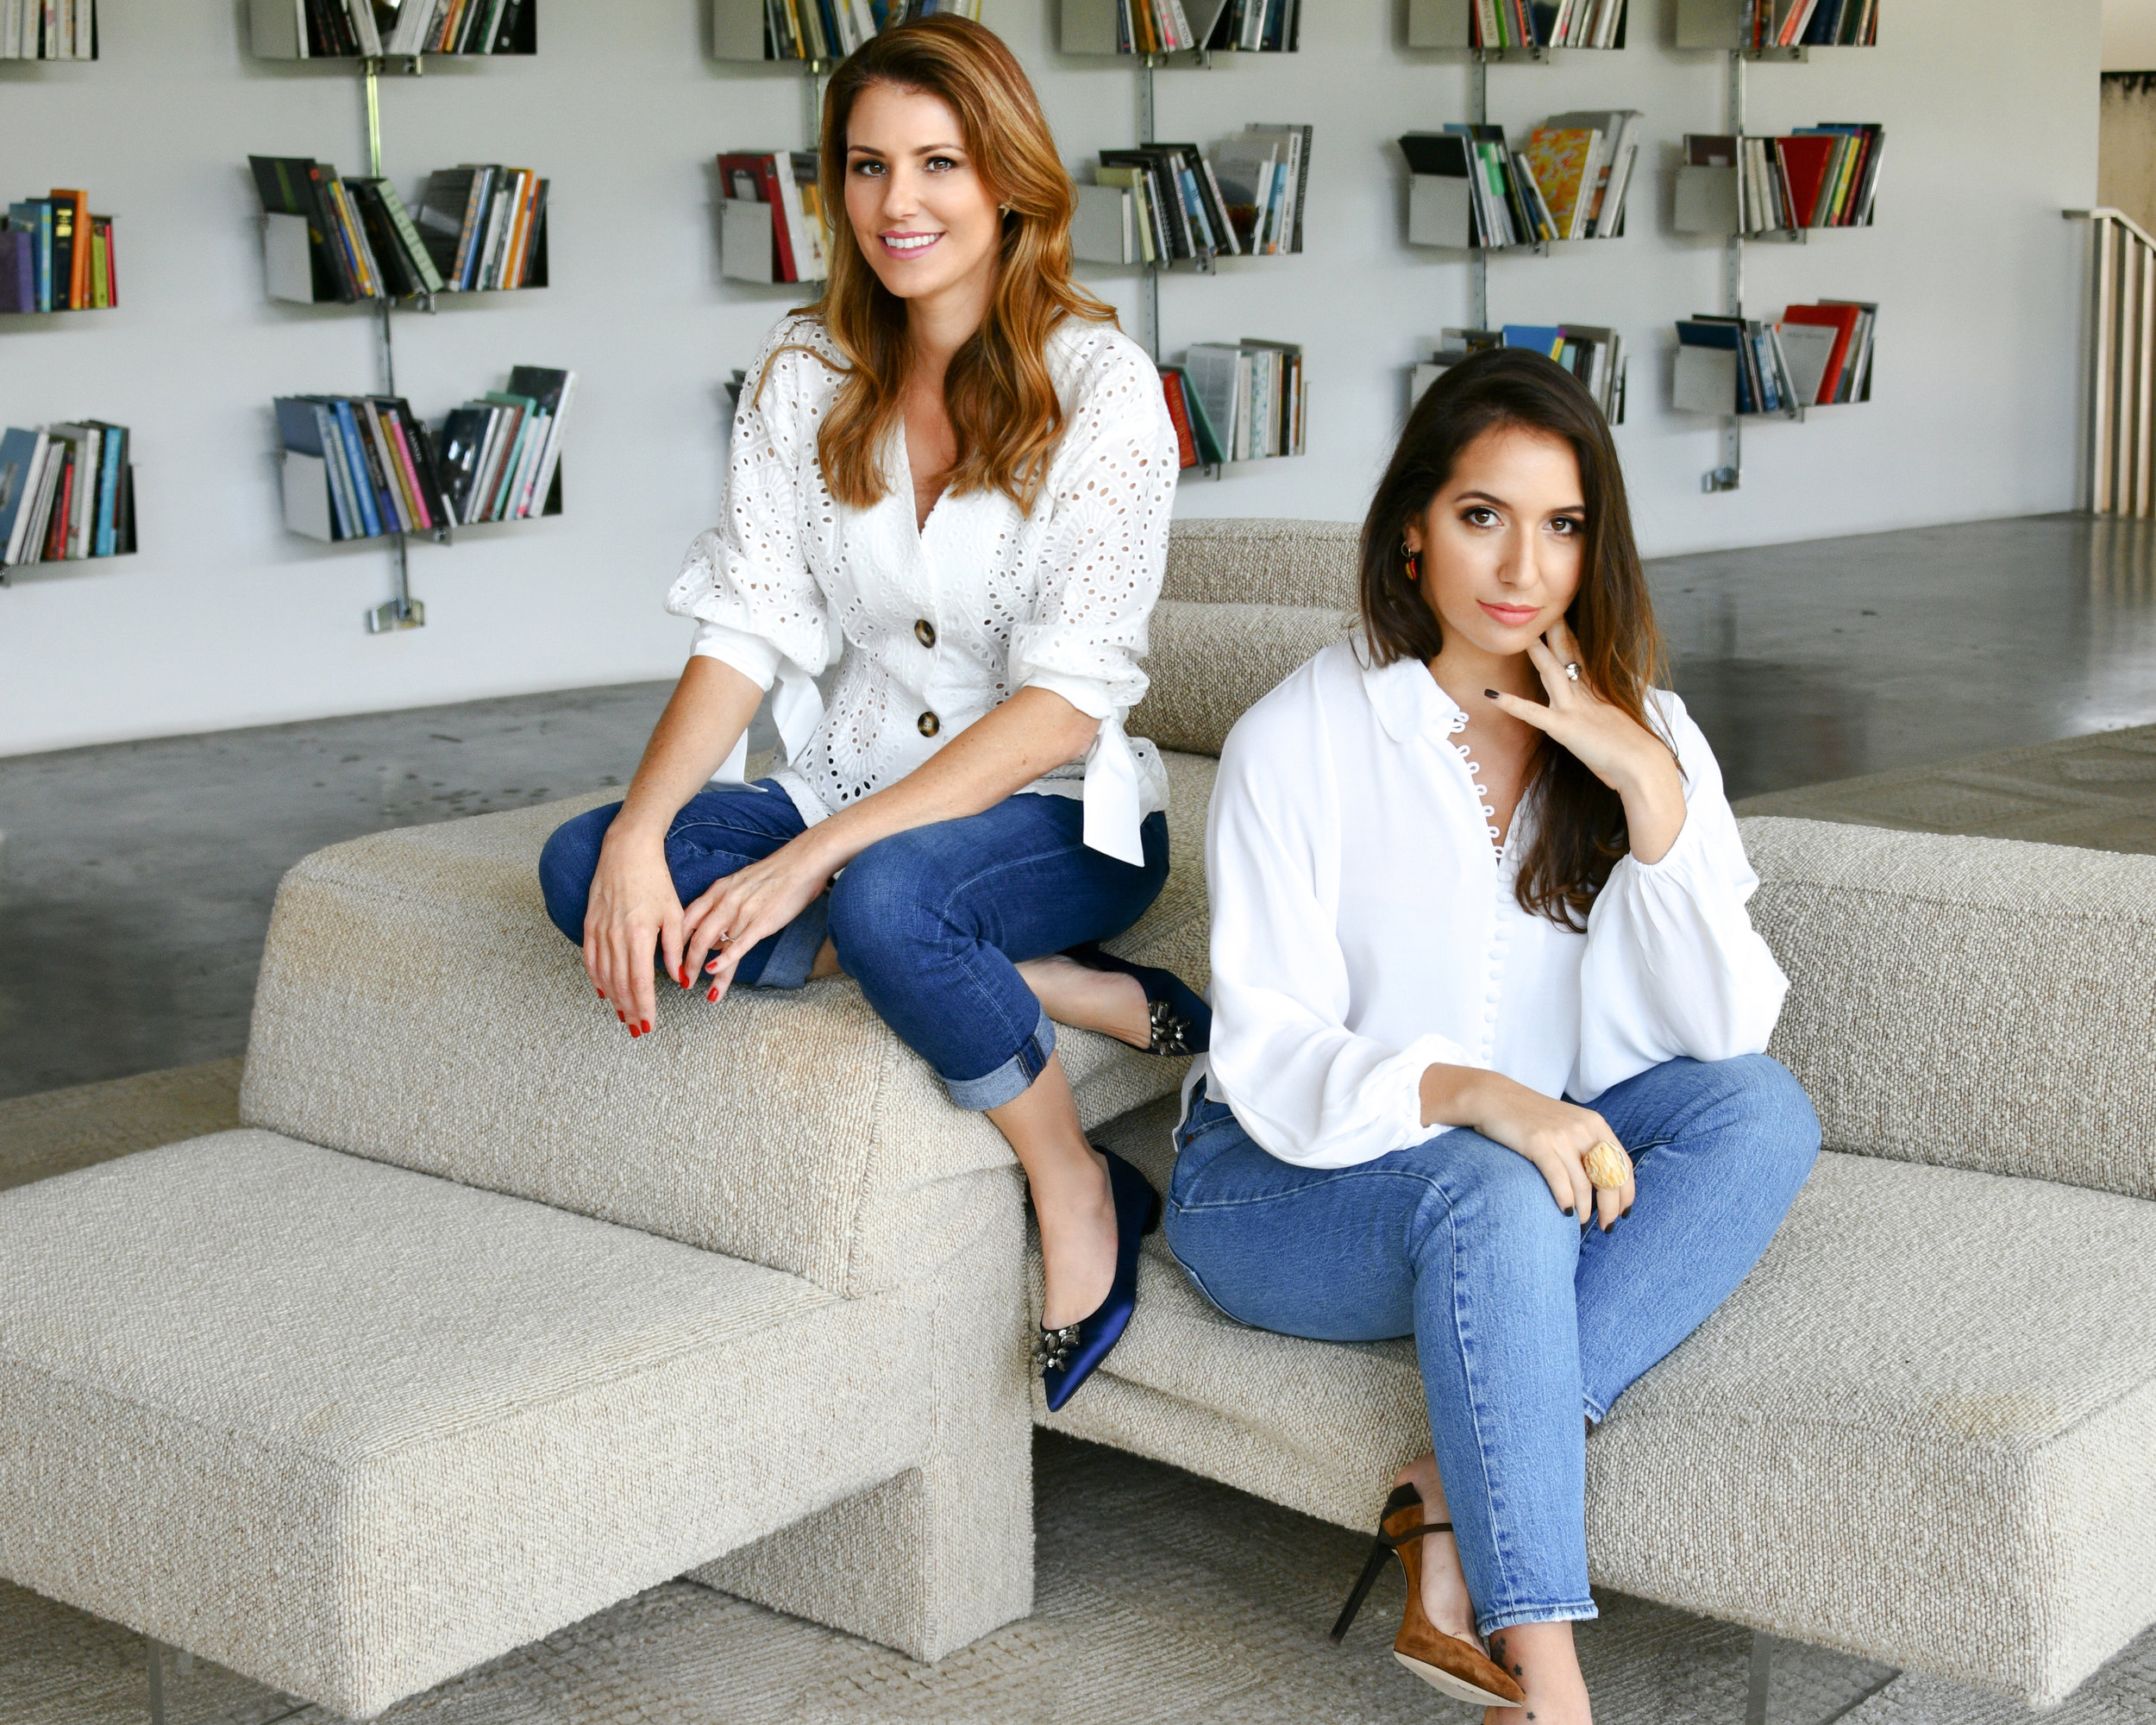 Founder of  Stitch Lab , Karina Rosendo (left), and  Stitch Lab 's fashion director, Camila Straschnoy (right).